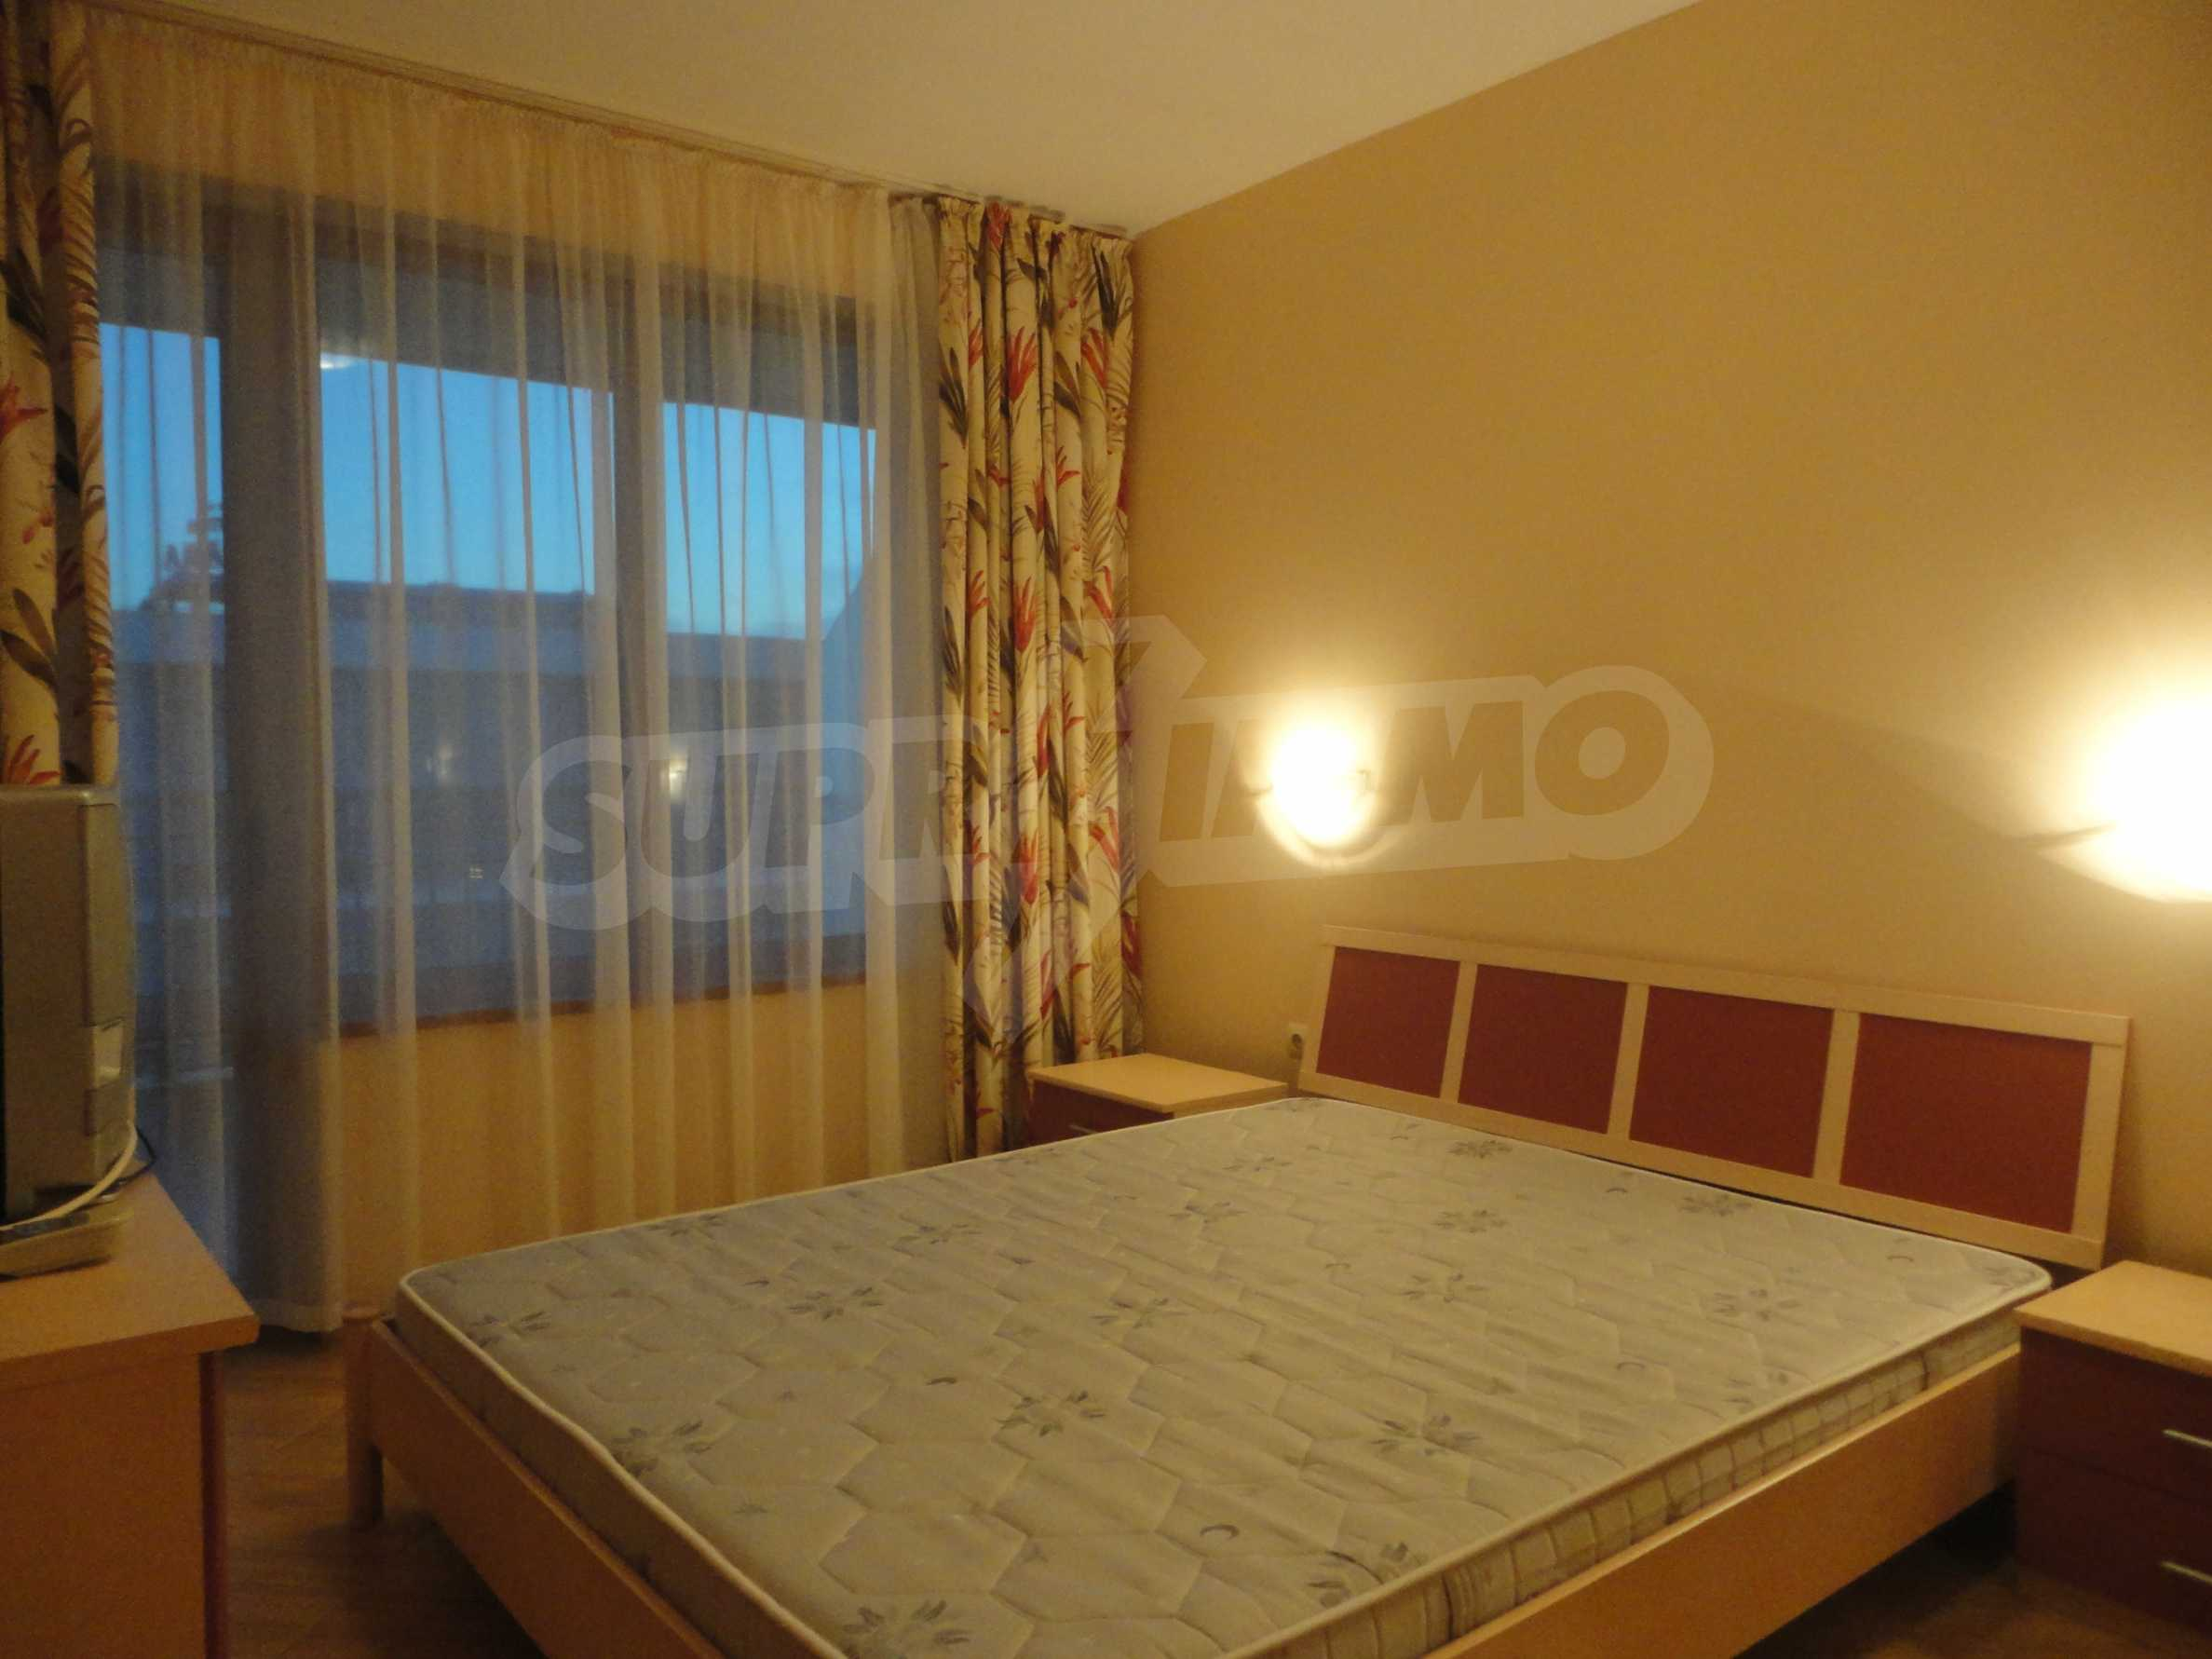 One-bedroom apartment in Golden Dreams complex in Sunny beach 6